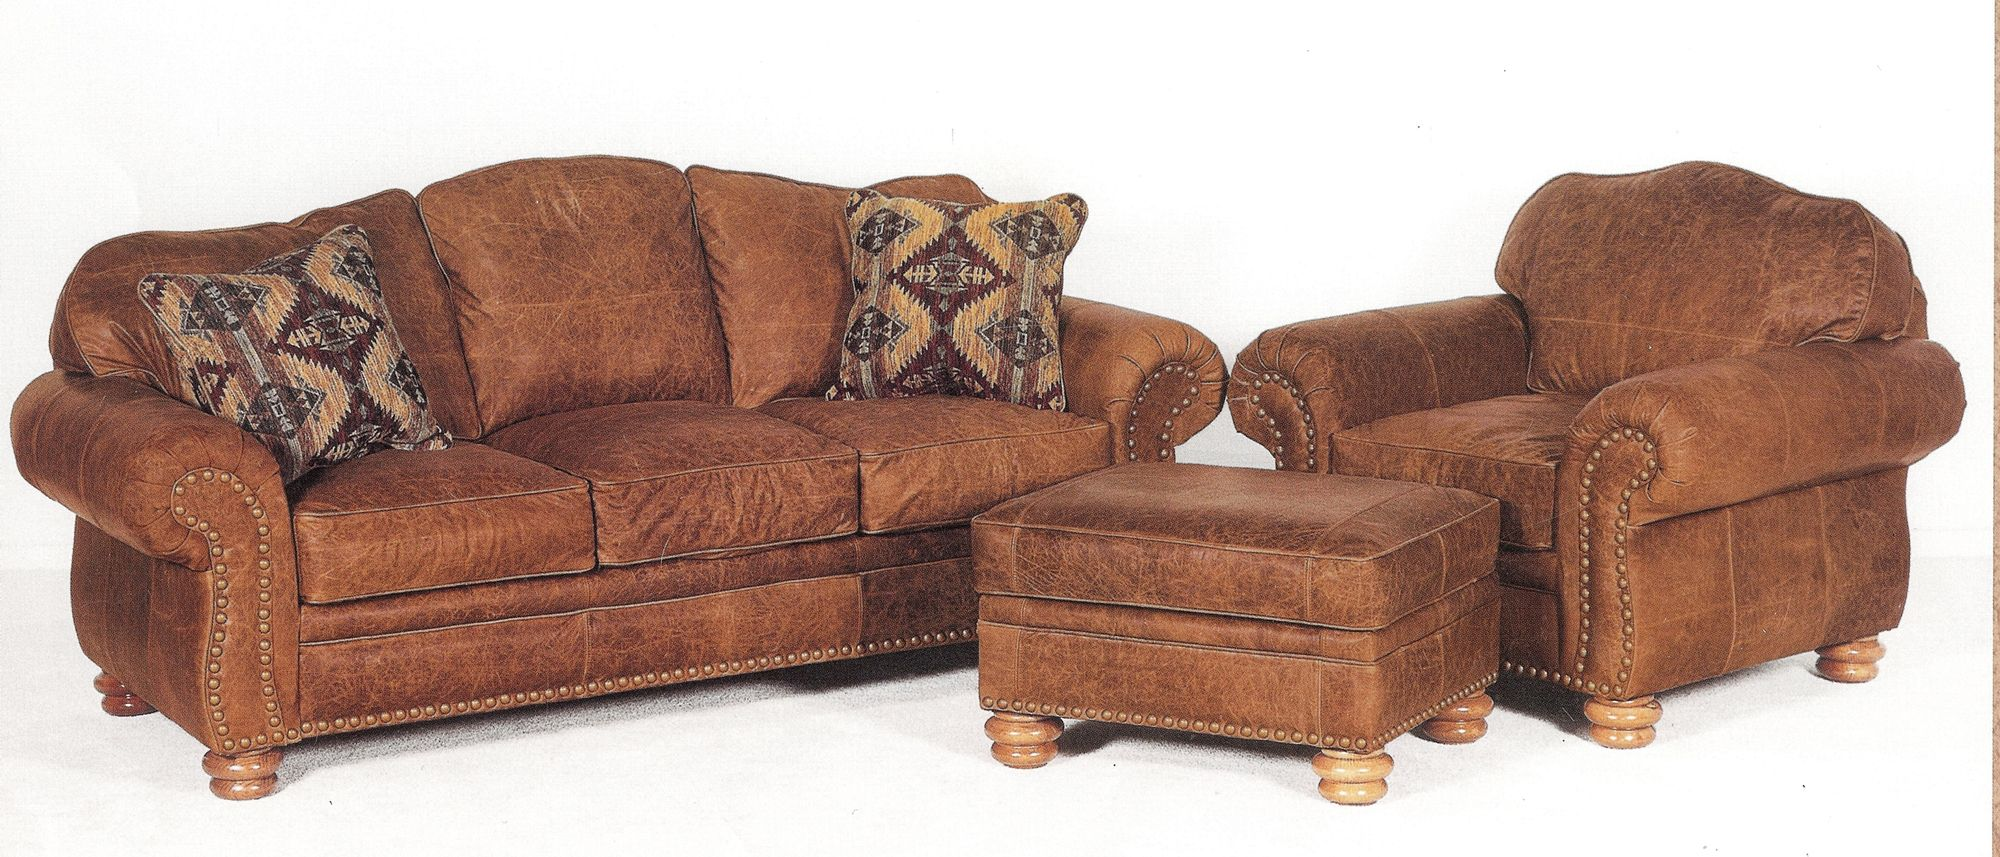 image detail for this distressed leather sofa chair and ottoman come in many colors